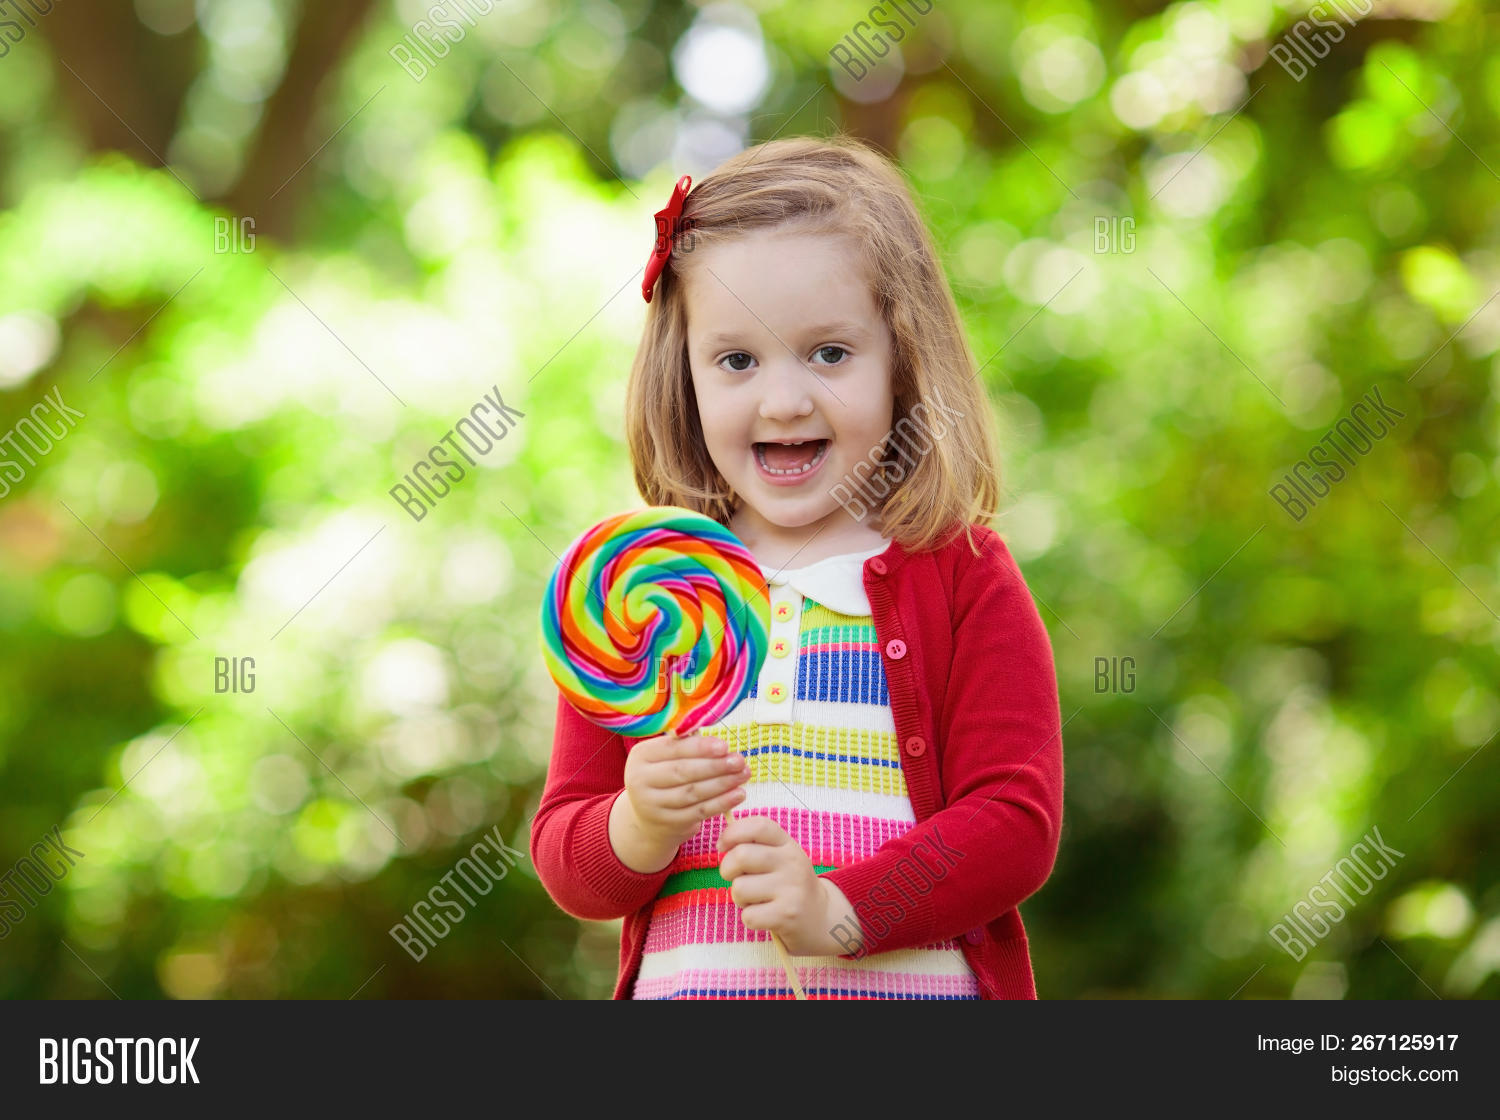 cb28215bfd0 Kids Wearing Colorful Image & Photo (Free Trial) | Bigstock